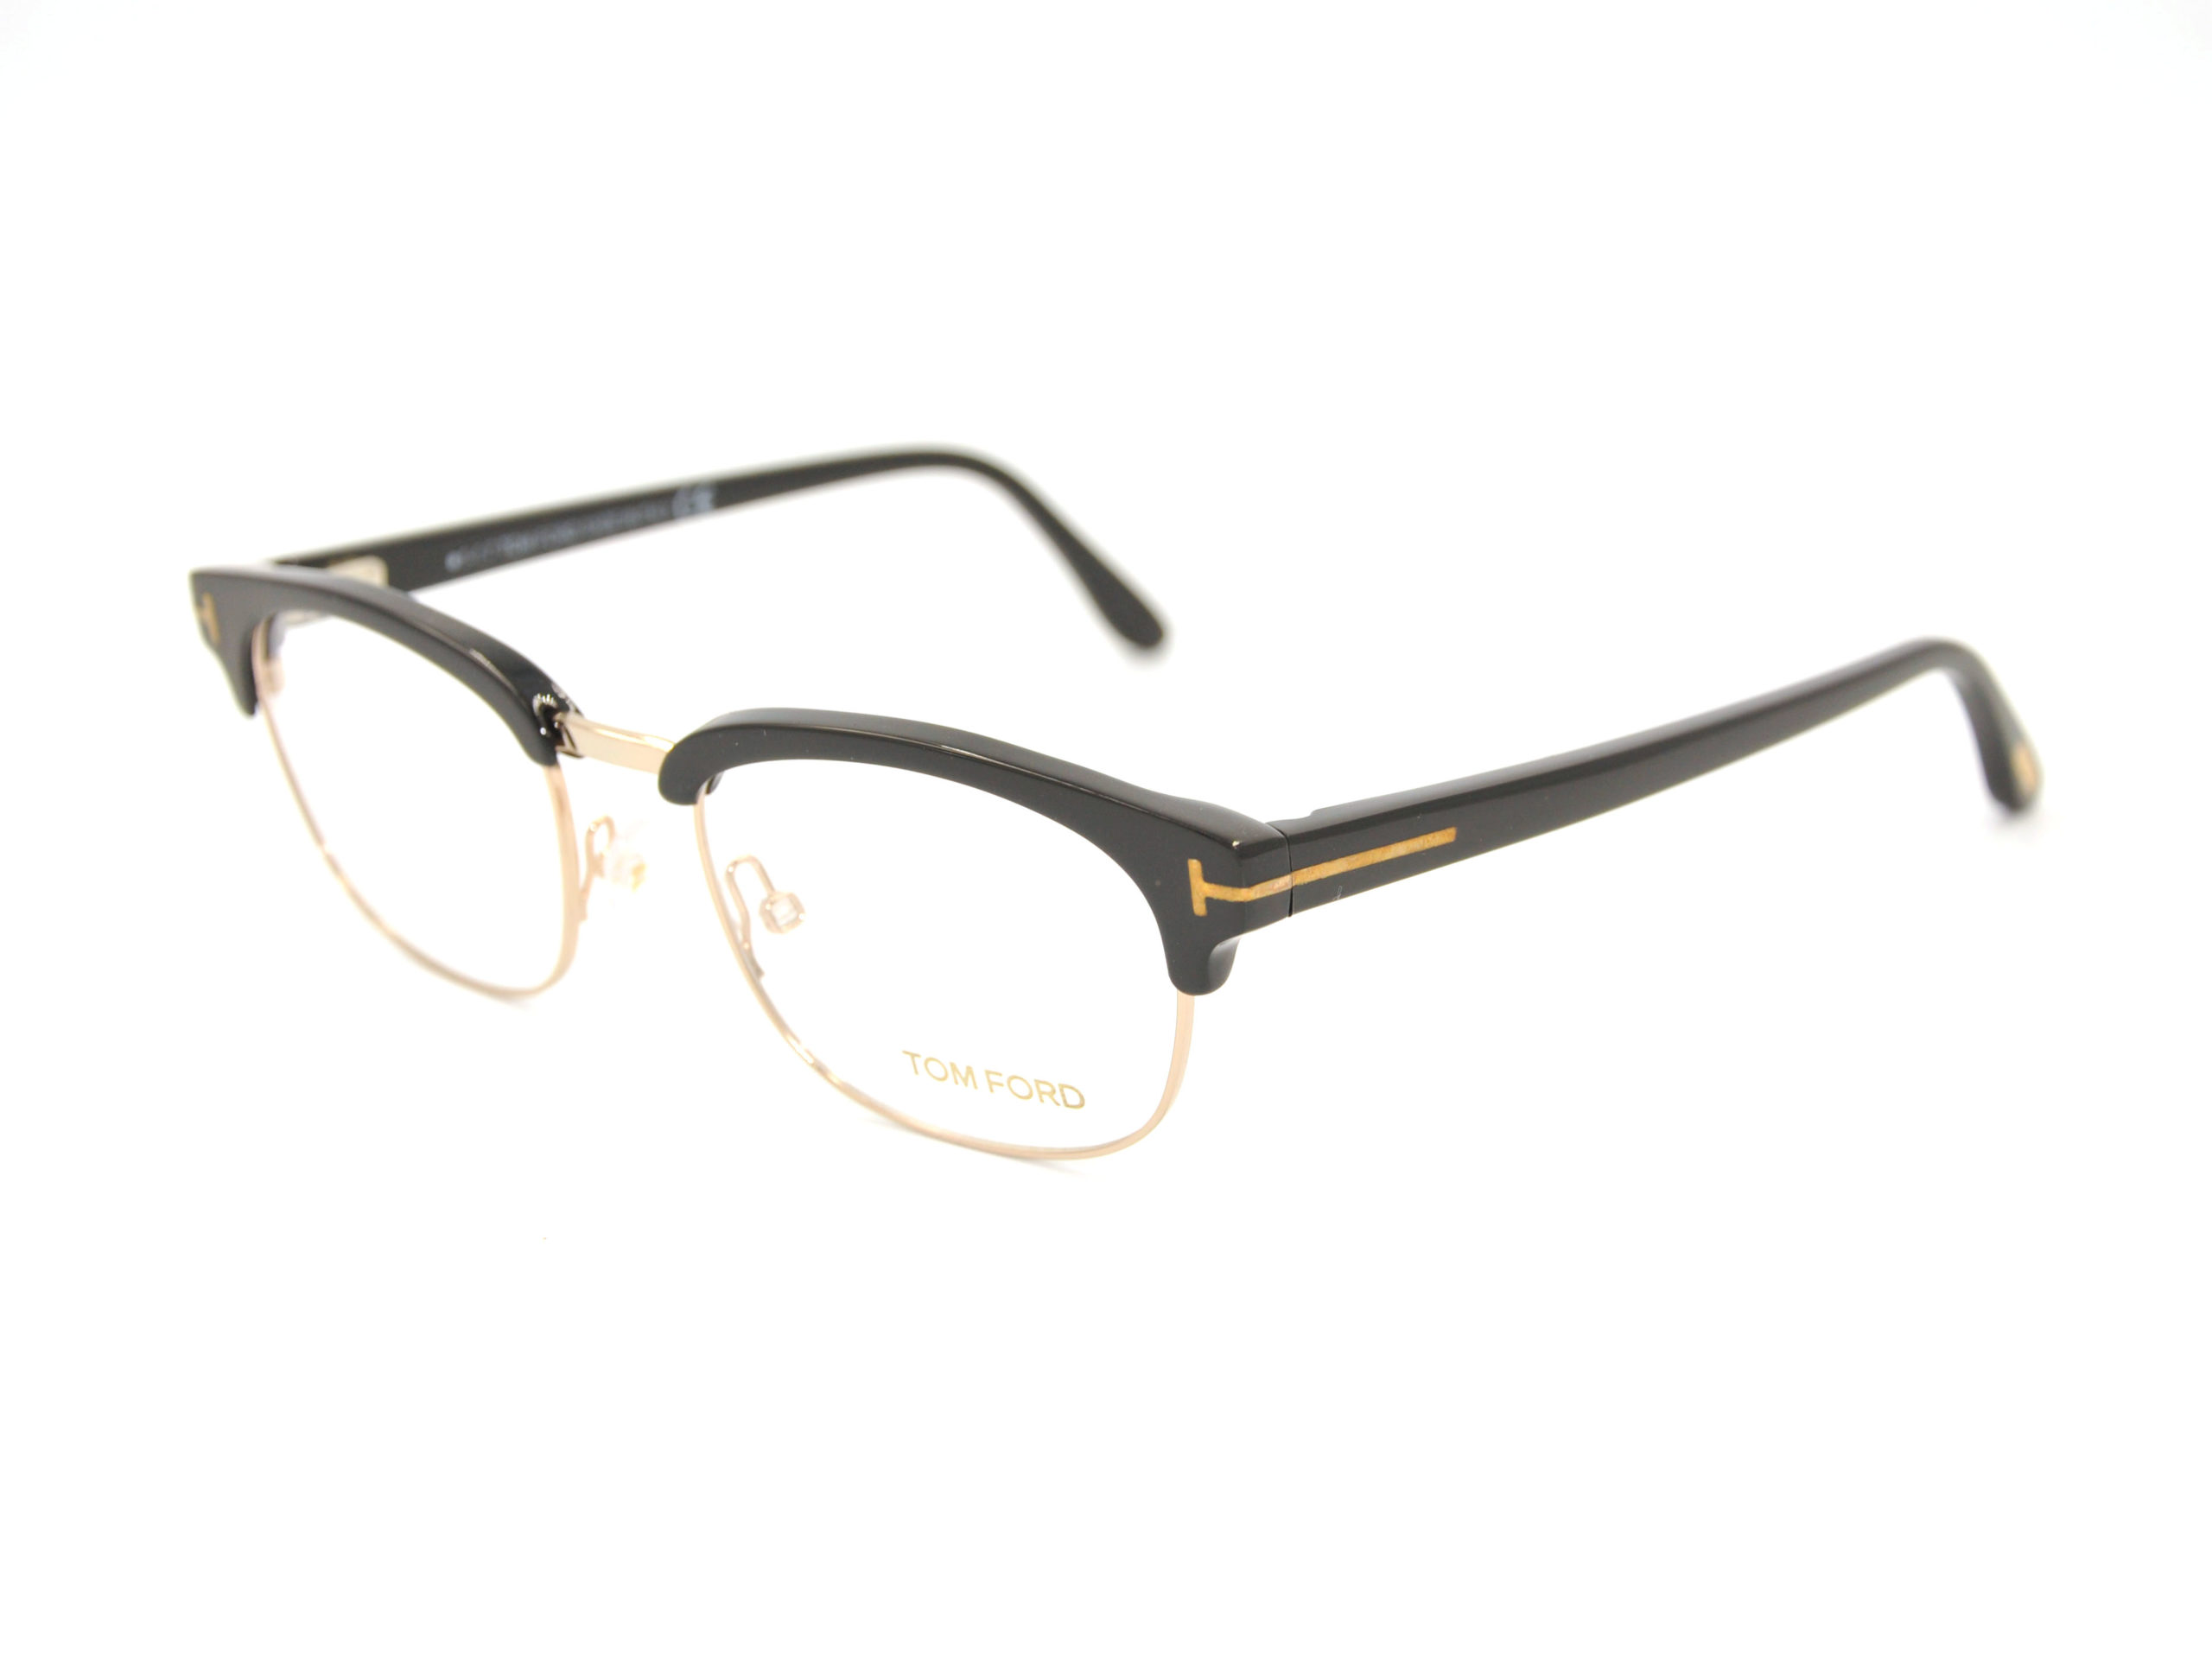 TOM FORD TF5458 UNISEX Prescription Glasses 2020